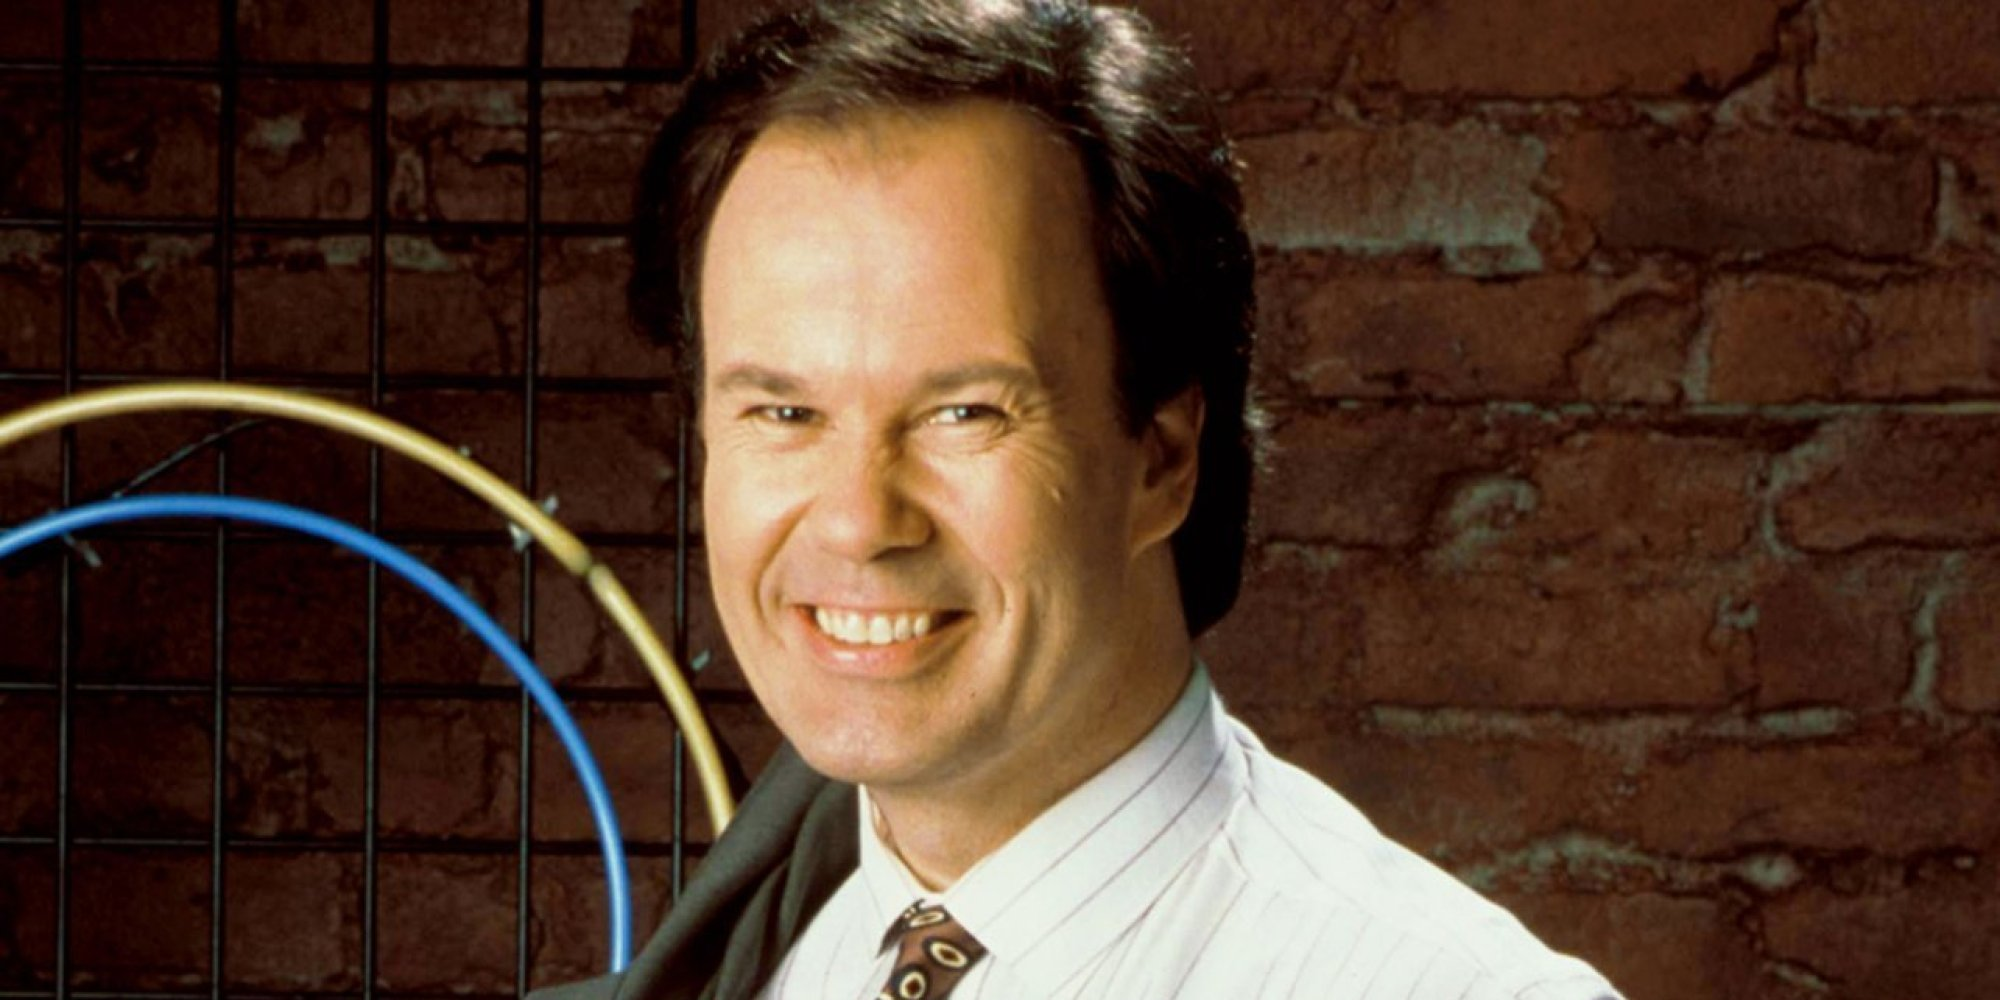 dennis haskins biographydennis haskins age, dennis haskins net worth, dennis haskins imdb, dennis haskins now, dennis haskins twitter, dennis haskins 2015, dennis haskins wwe, dennis haskins a million ways to die, dennis haskins karaoke, dennis haskins 2014, dennis haskins west wing, dennis haskins cy fair, dennis haskins lyrics, dennis haskins booking, dennis haskins action bronson, dennis haskins dead, dennis haskins chattanooga, dennis haskins biography, dennis haskins how i met your mother